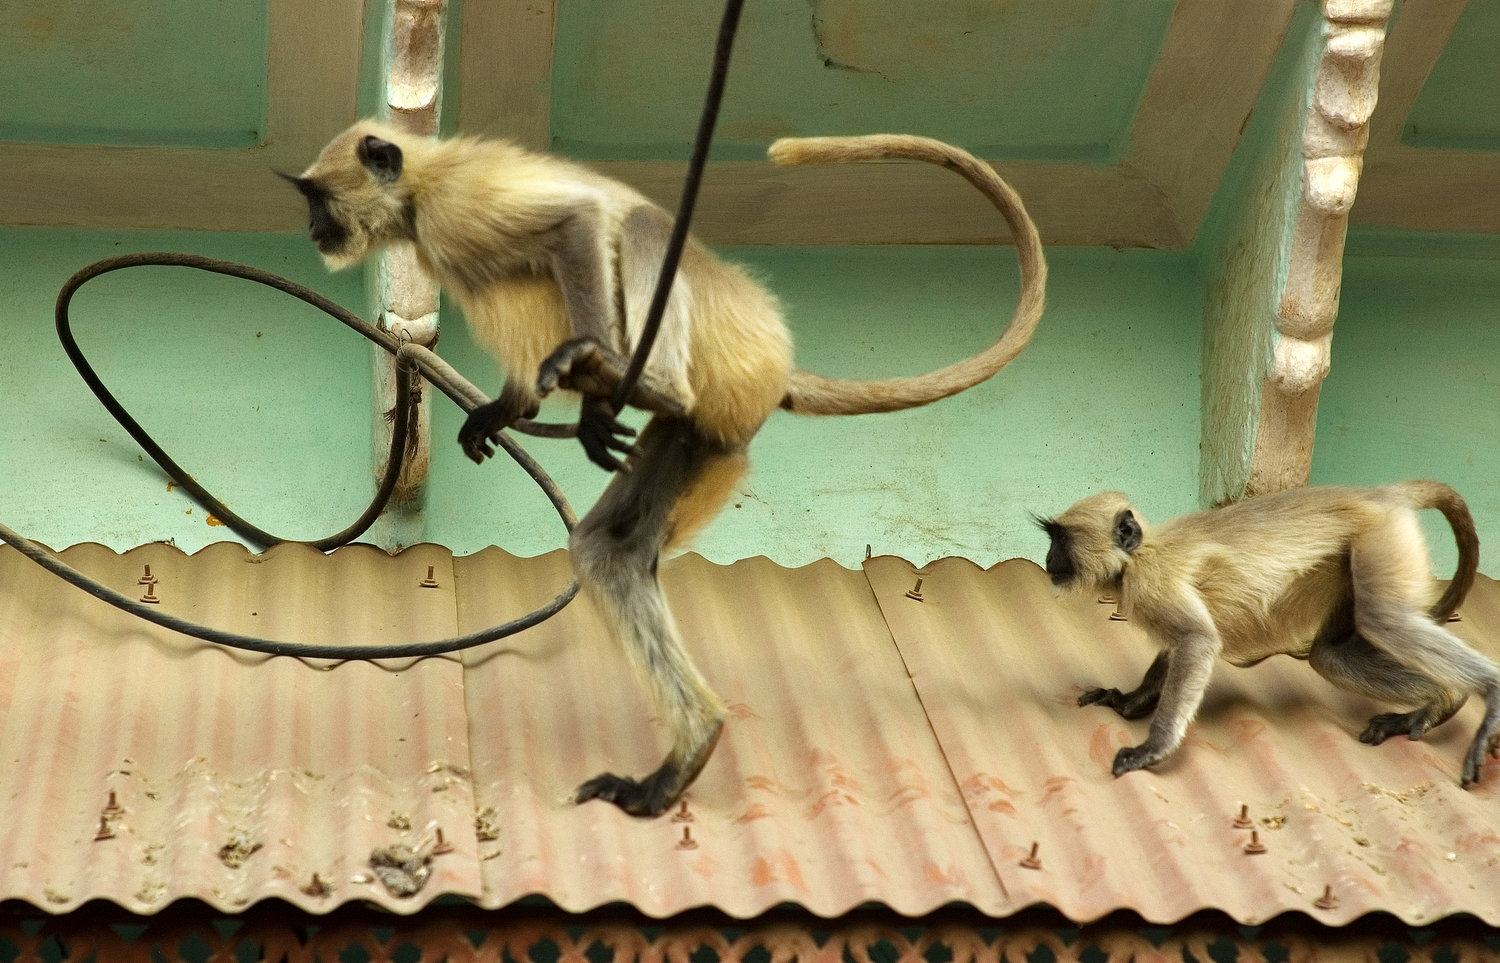 Monkies on a Hot Tin Roof